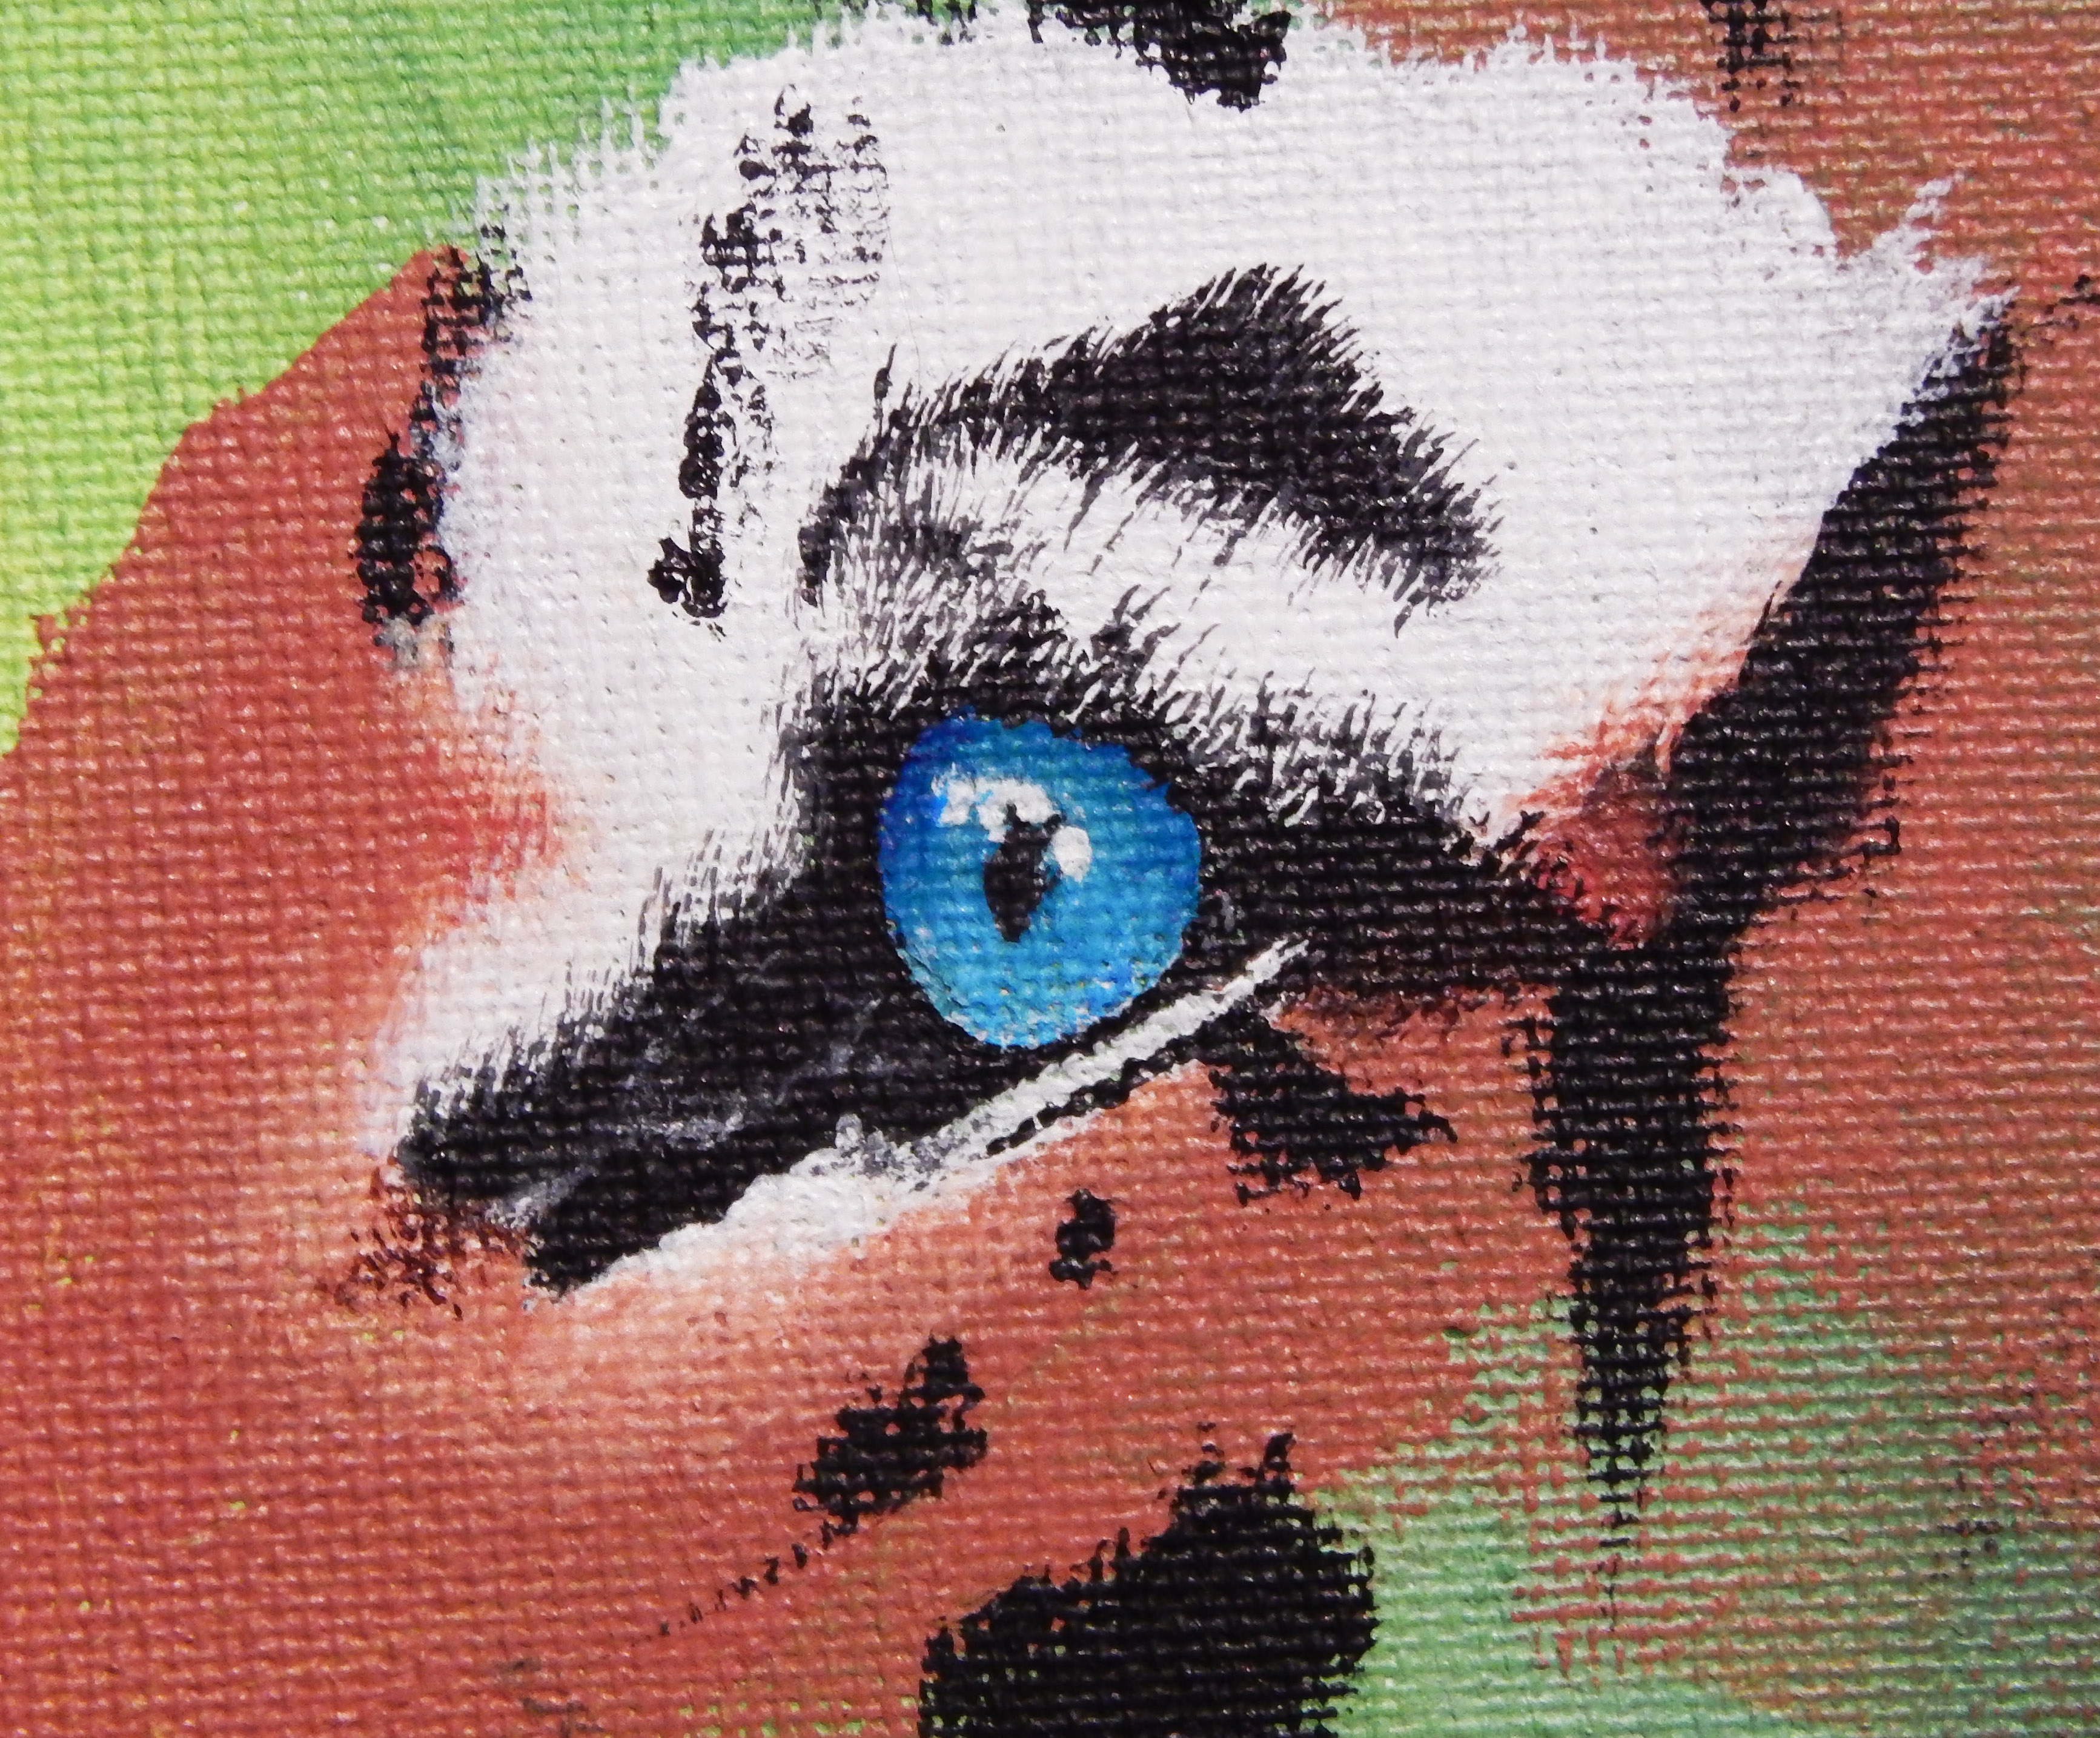 Tiger Painting work in progress close up